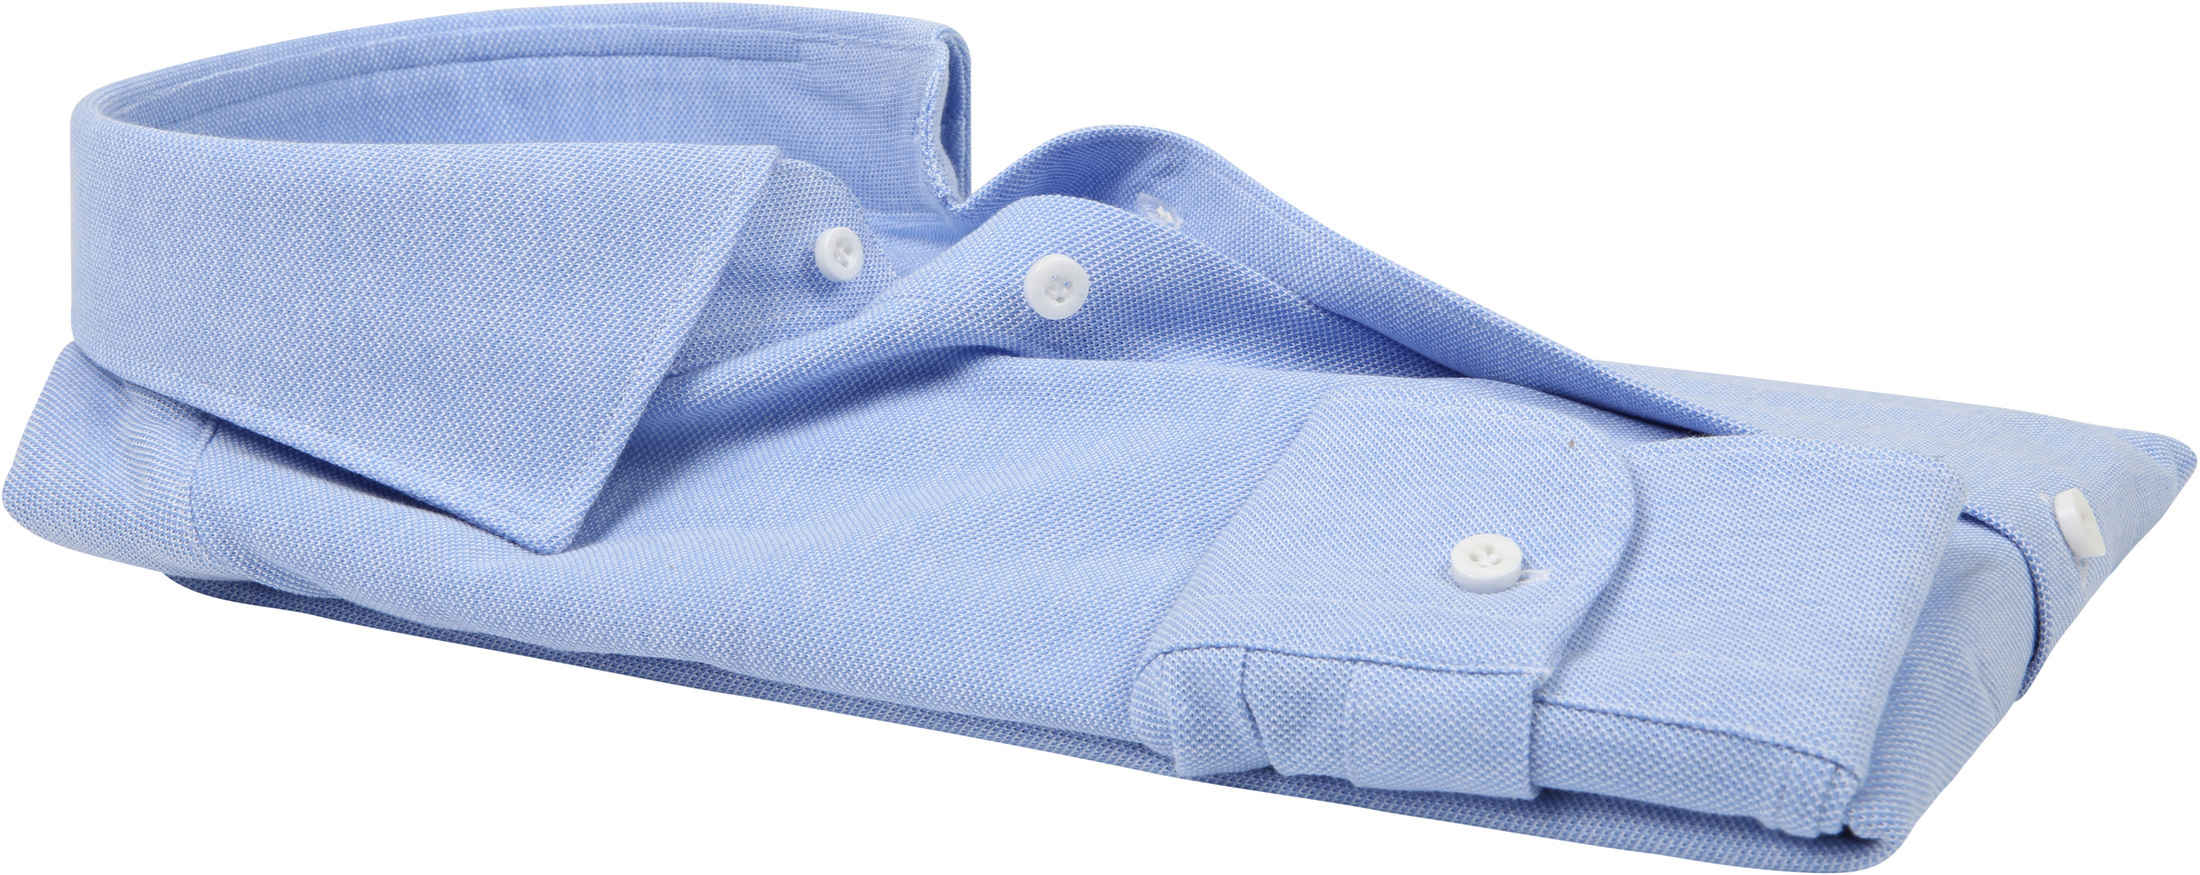 Profuomo Shirt Knitted Slim Fit Blue foto 3